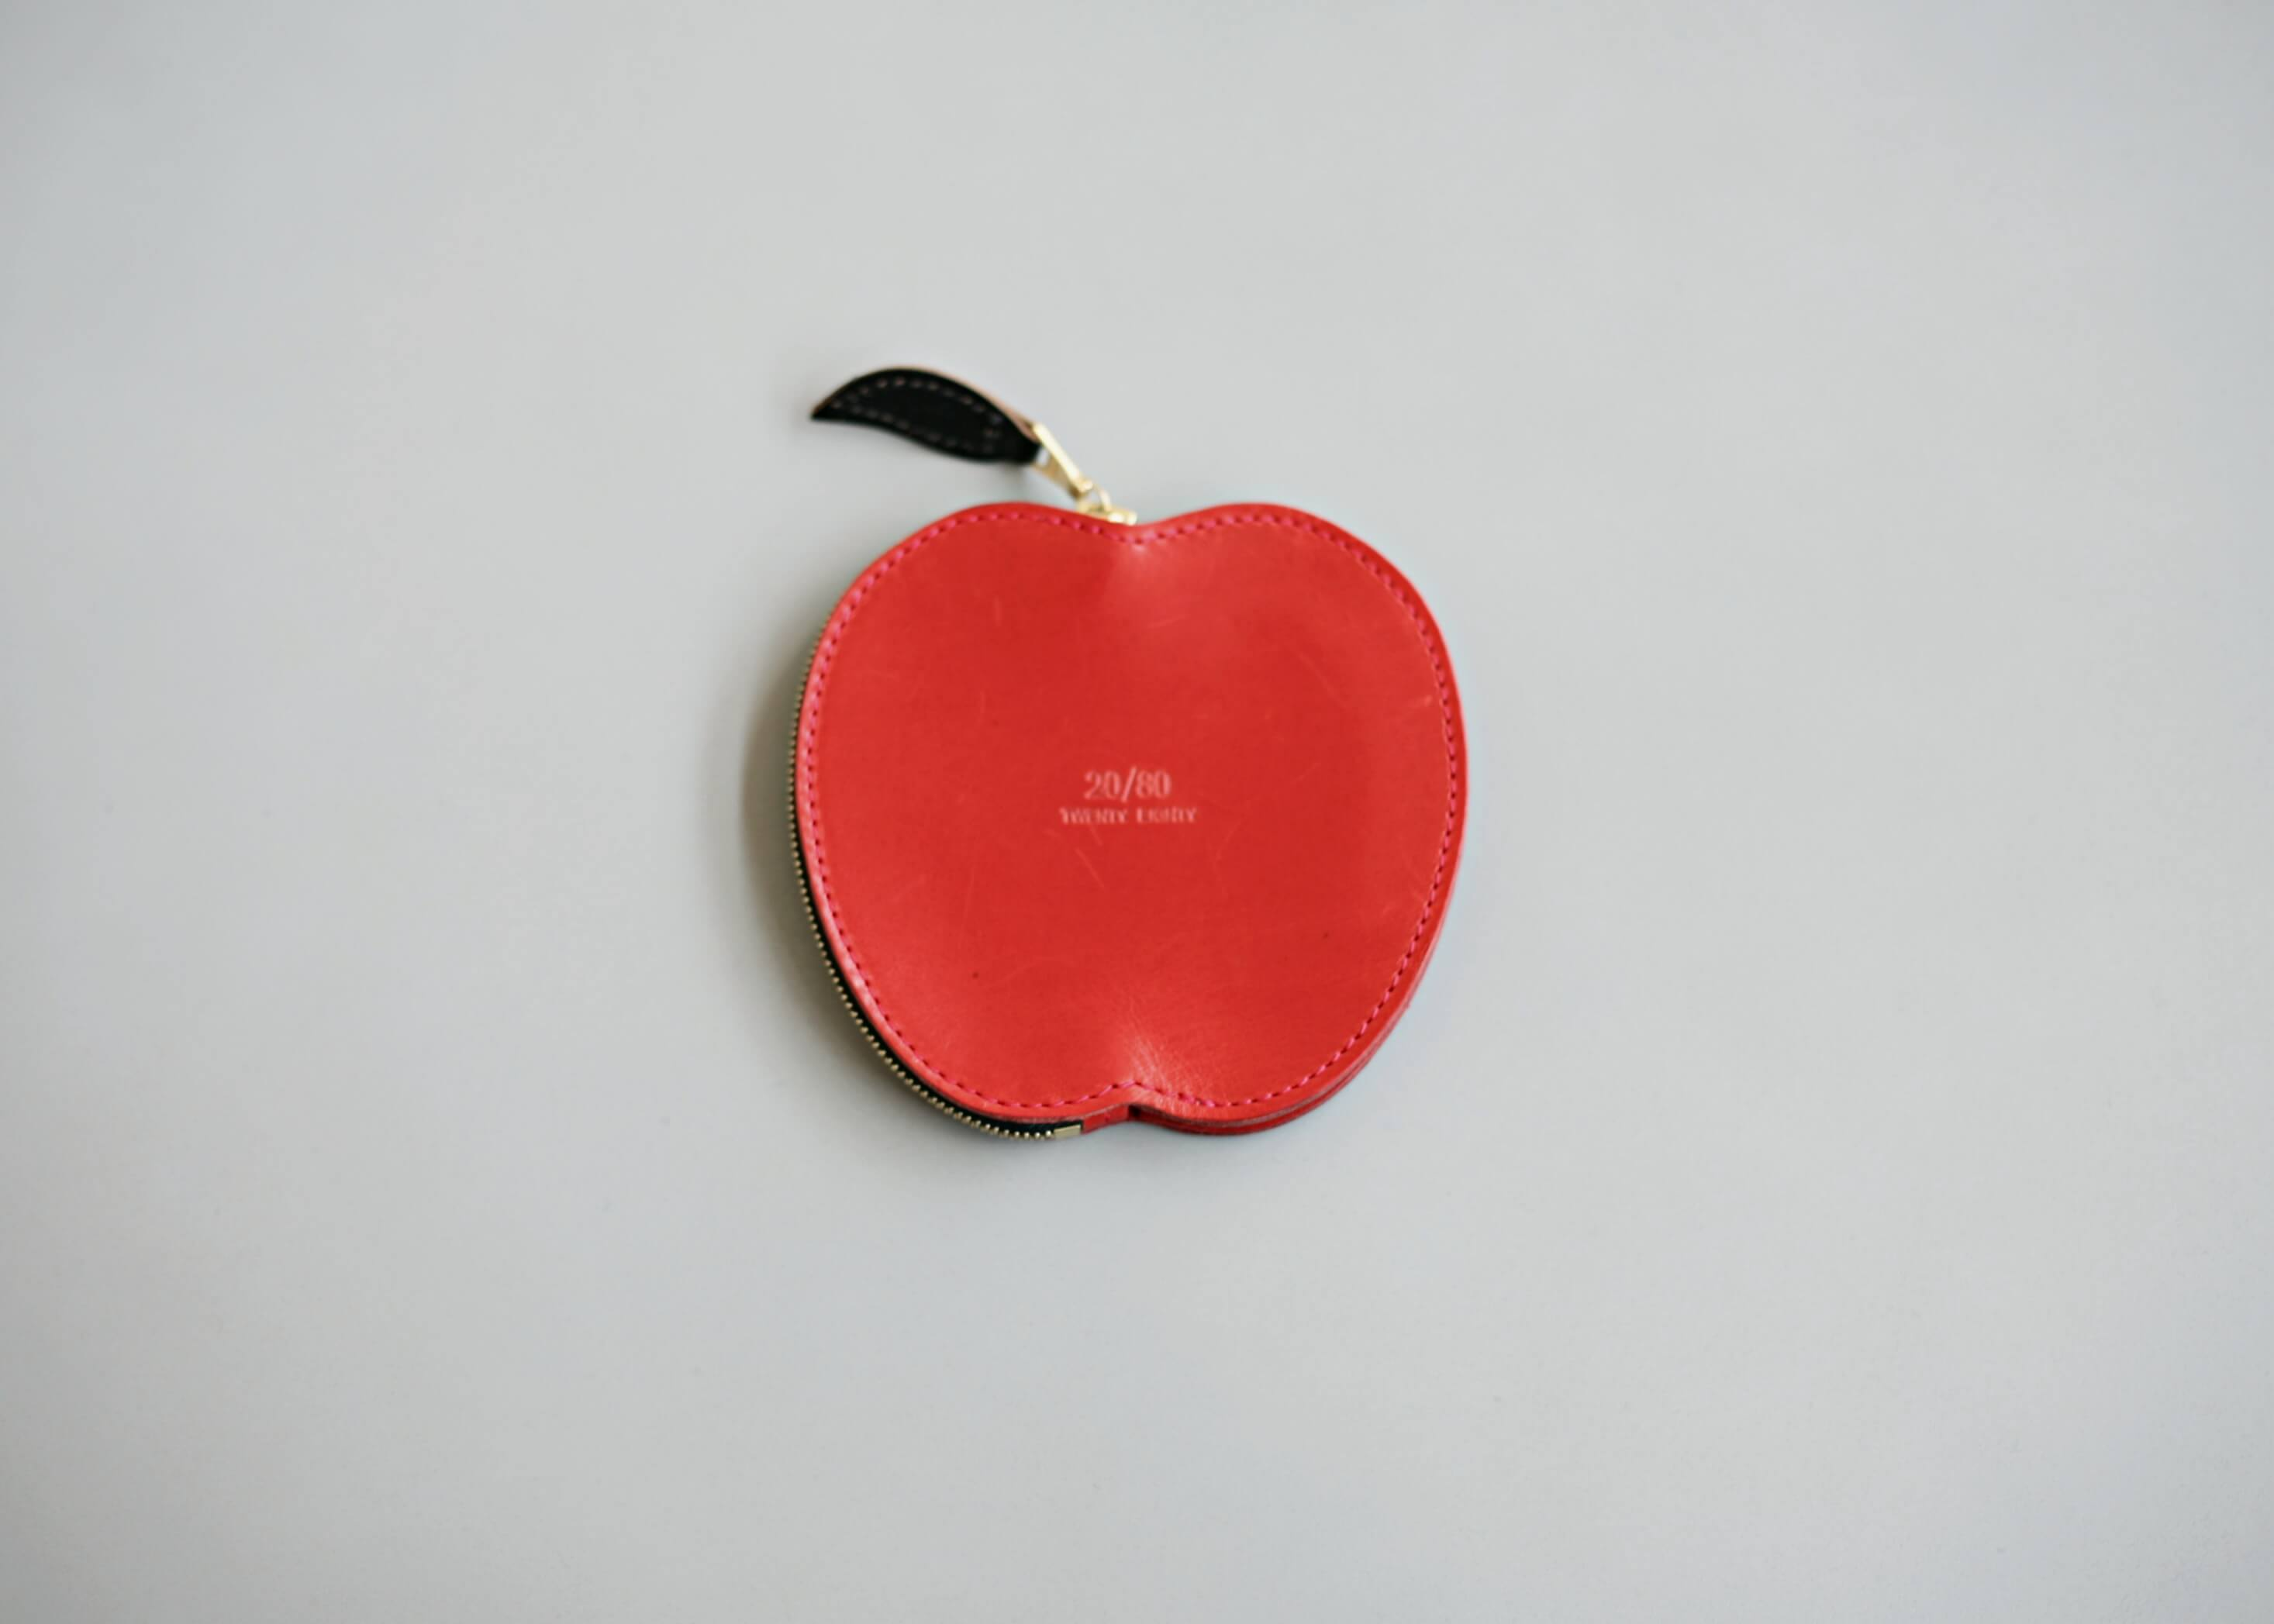 20/80 kip leather apple coin purse 裏の写真